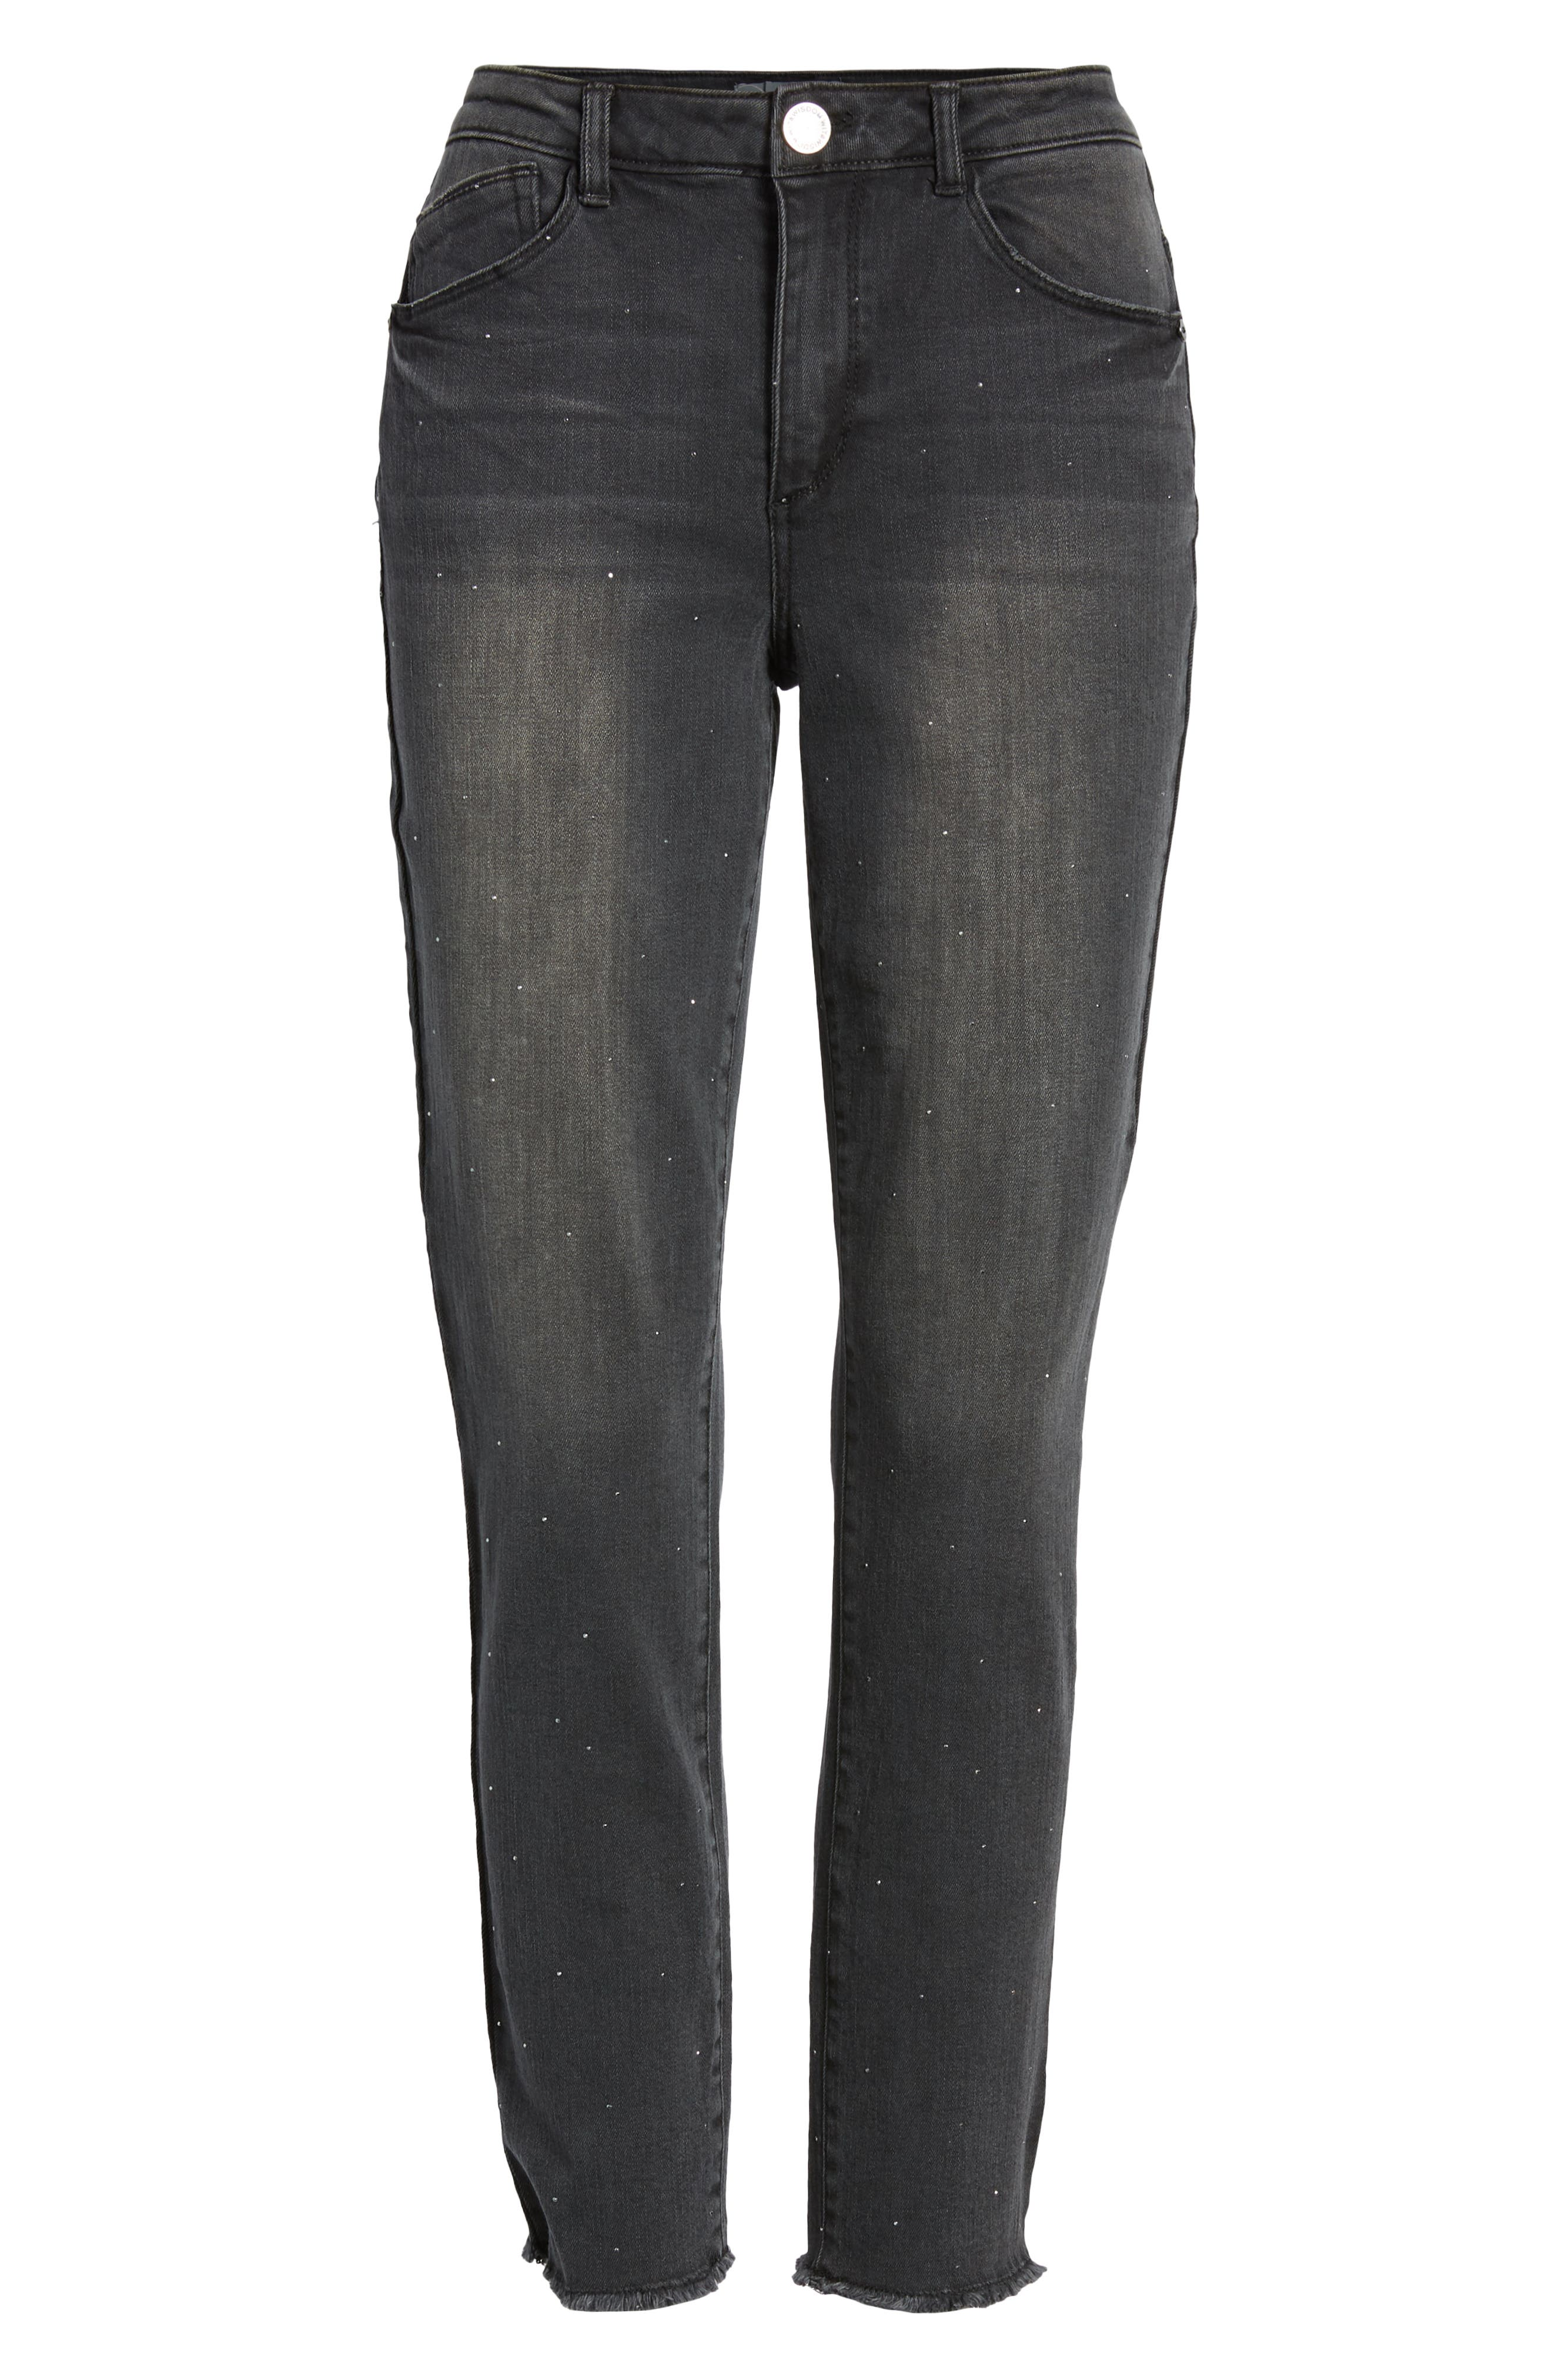 Ab-Solution Embellished Ankle Jeans,                             Alternate thumbnail 7, color,                             001